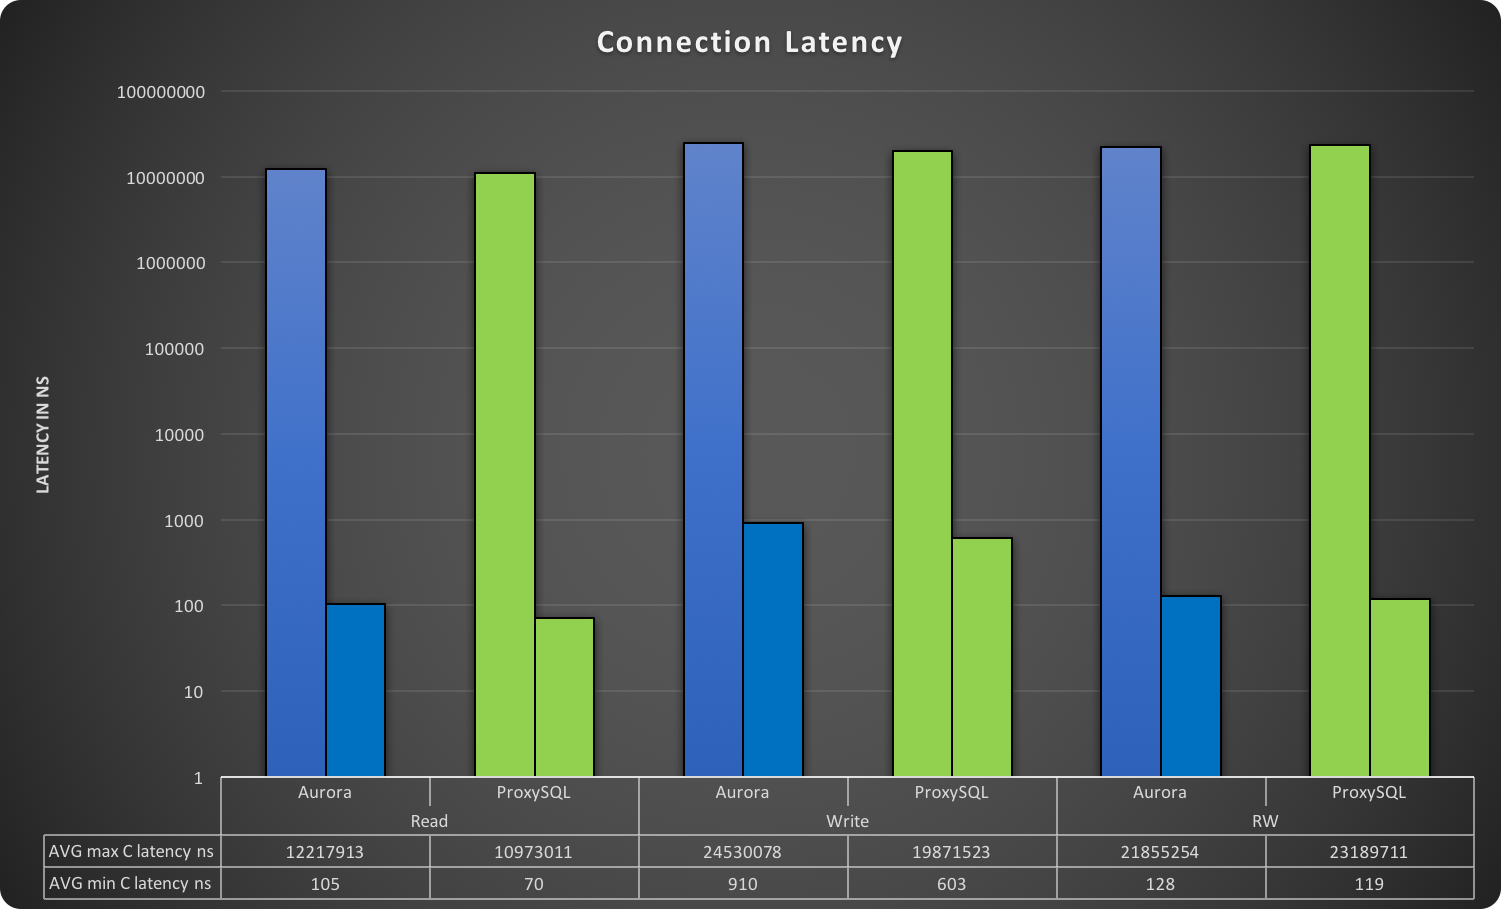 app_con_latency_summary